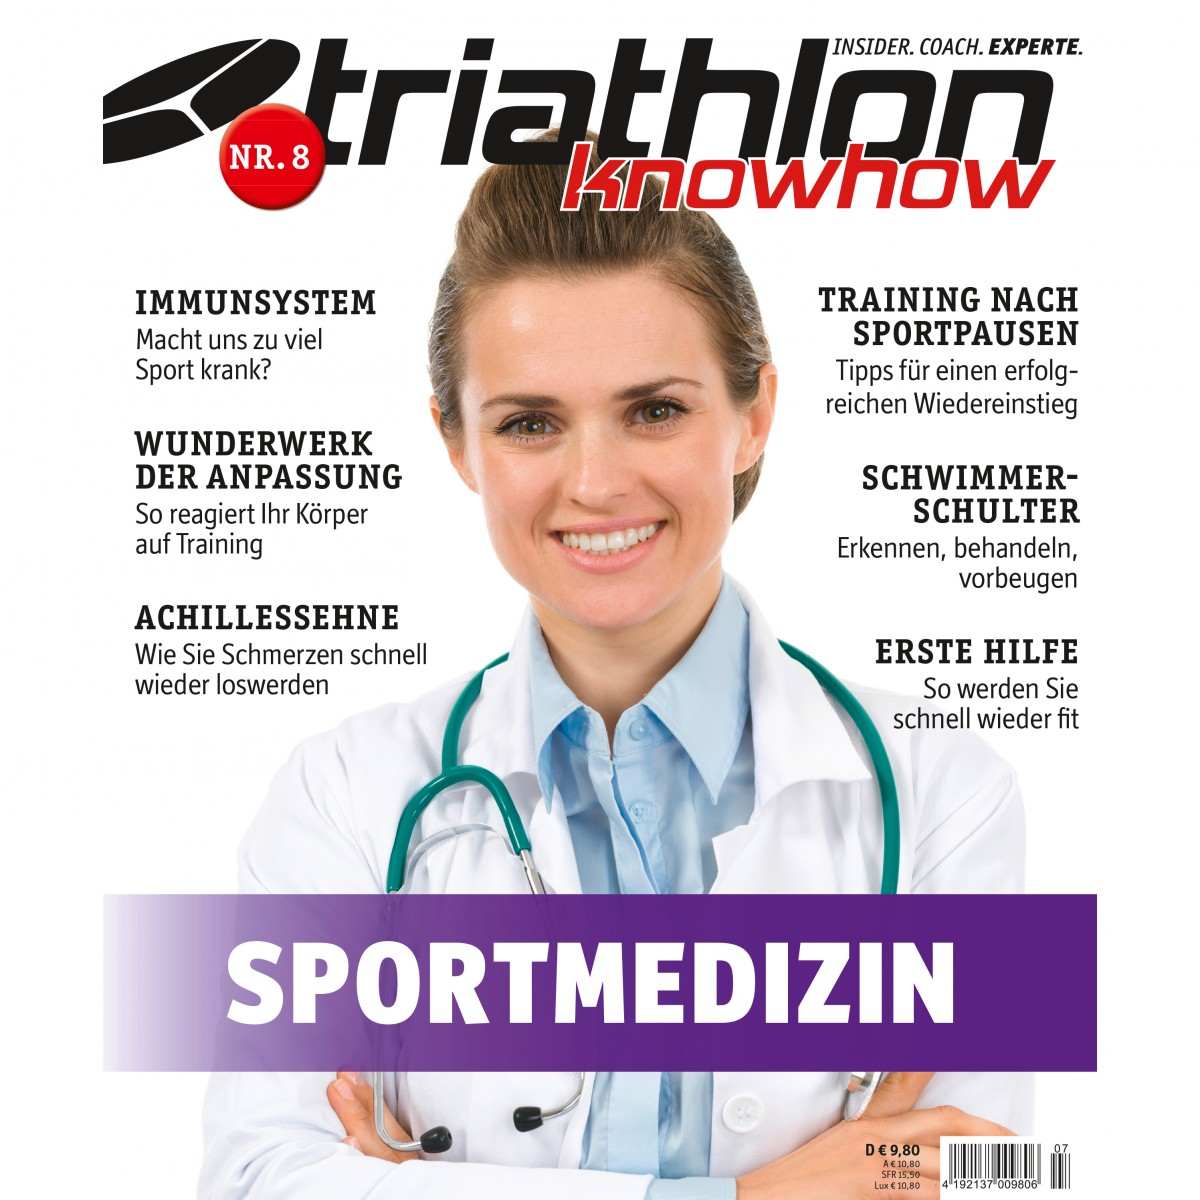 triathlon knowhow Nr. 6: Material